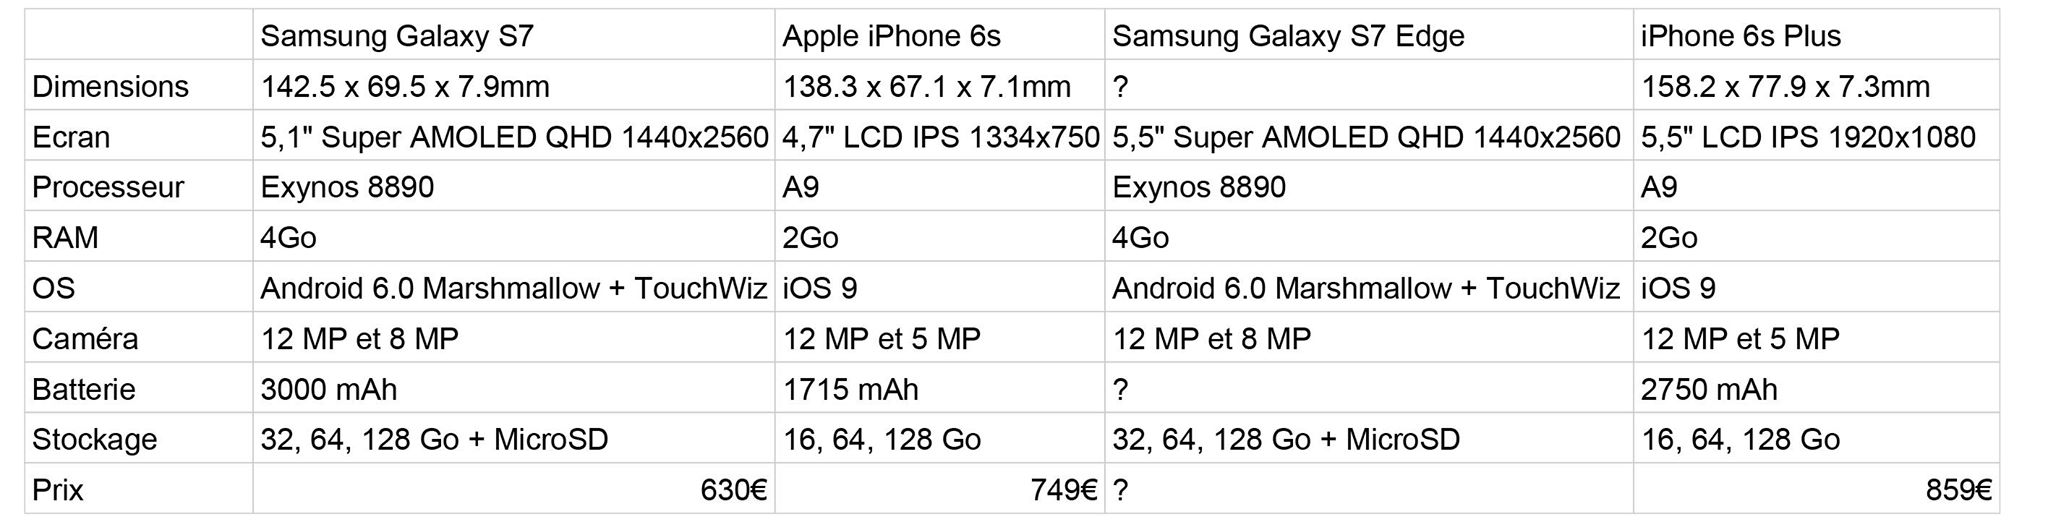 fiches-techniques-galaxy-S7-vs-iphone-6s